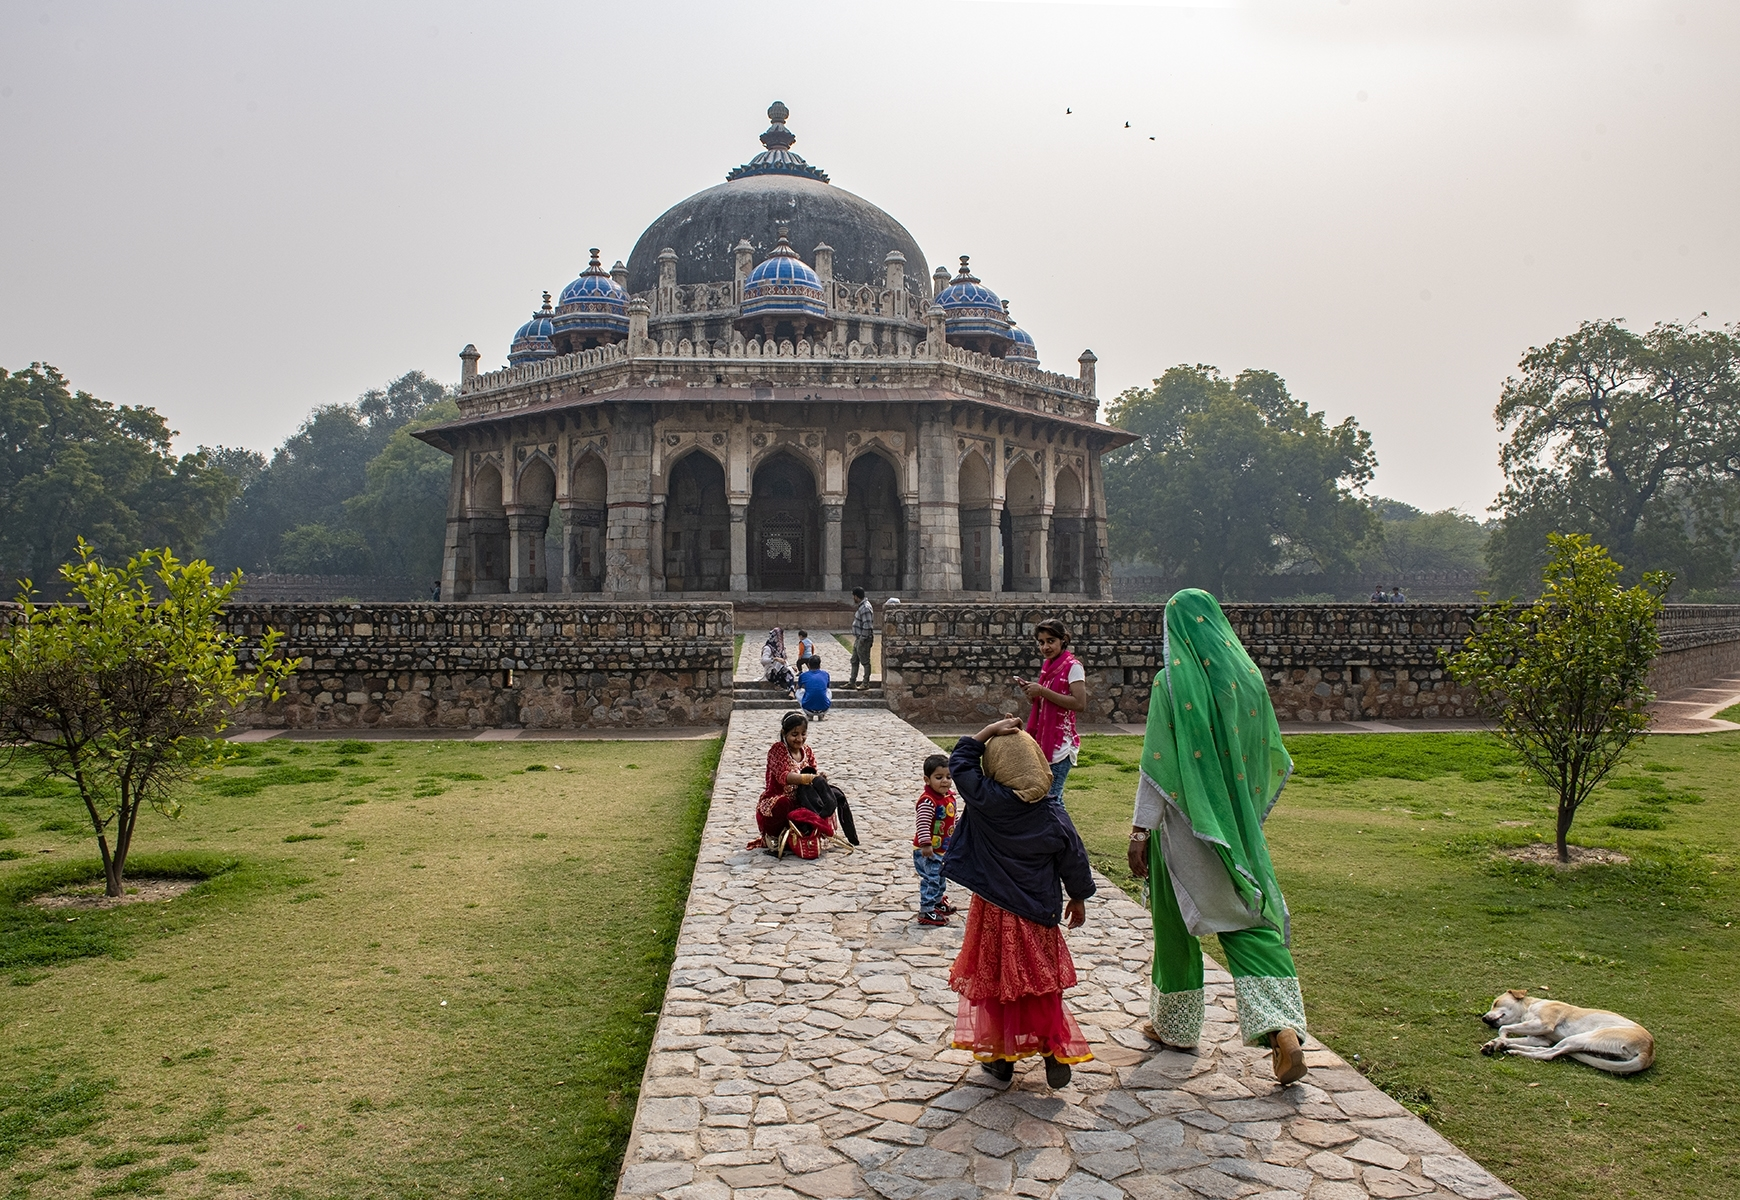 Visitors-approach-the-tomb-of-Isa-Khan-built-in-1547-located-in-the-Humayun-complex-Delhi-India-February-2019-TA-Best-in-Division-by-Stephen-Busch-Fellow-CC